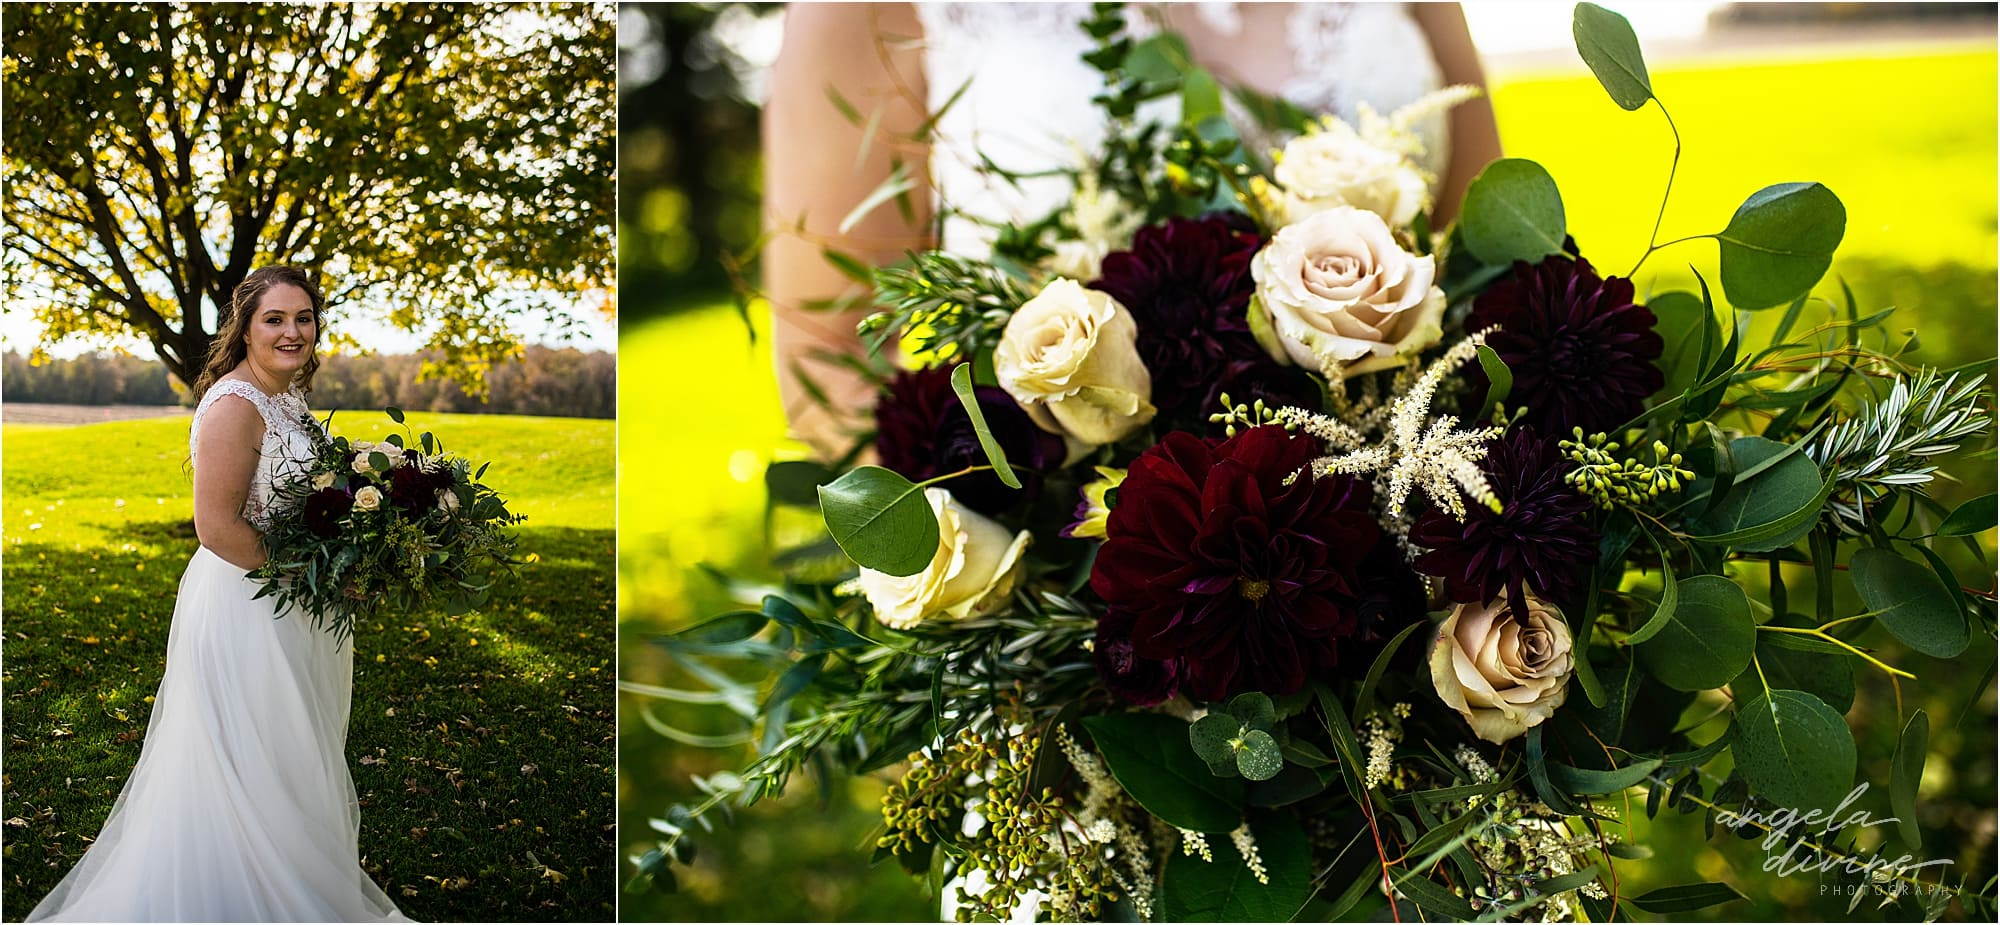 The Cottage Farmhouse Wedding Bride and flowers